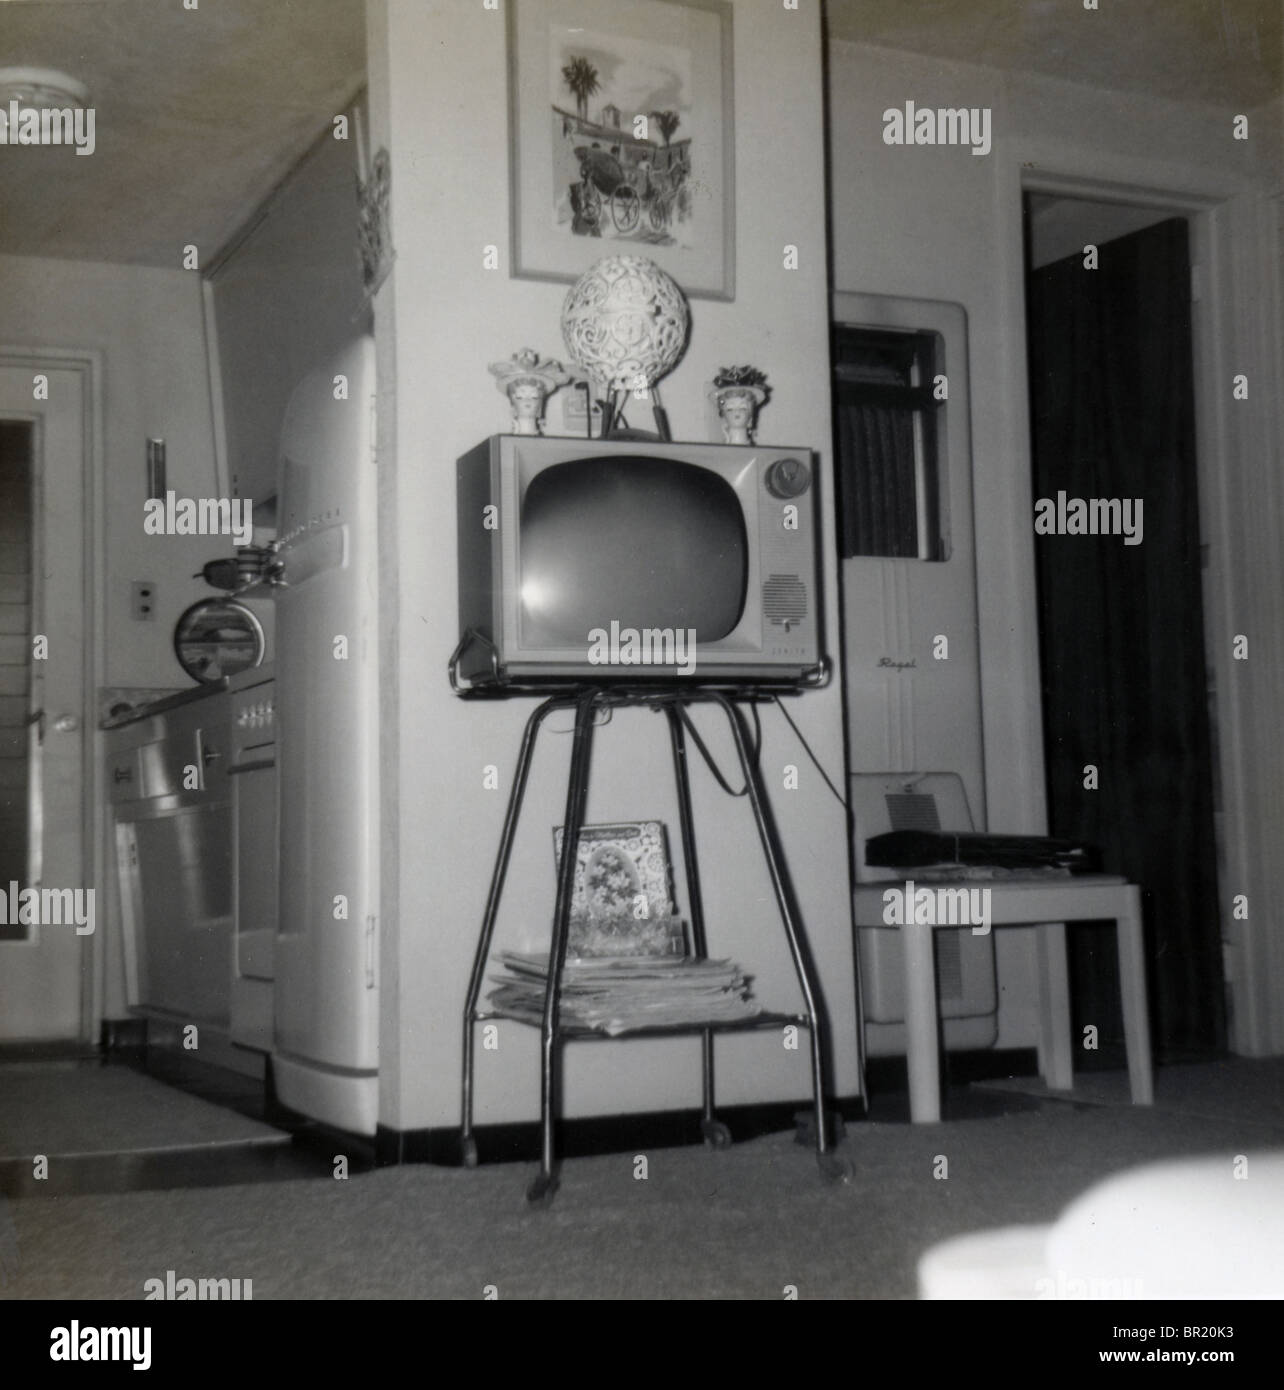 1960s tv family stock photos & 1960s tv family stock images - alamy